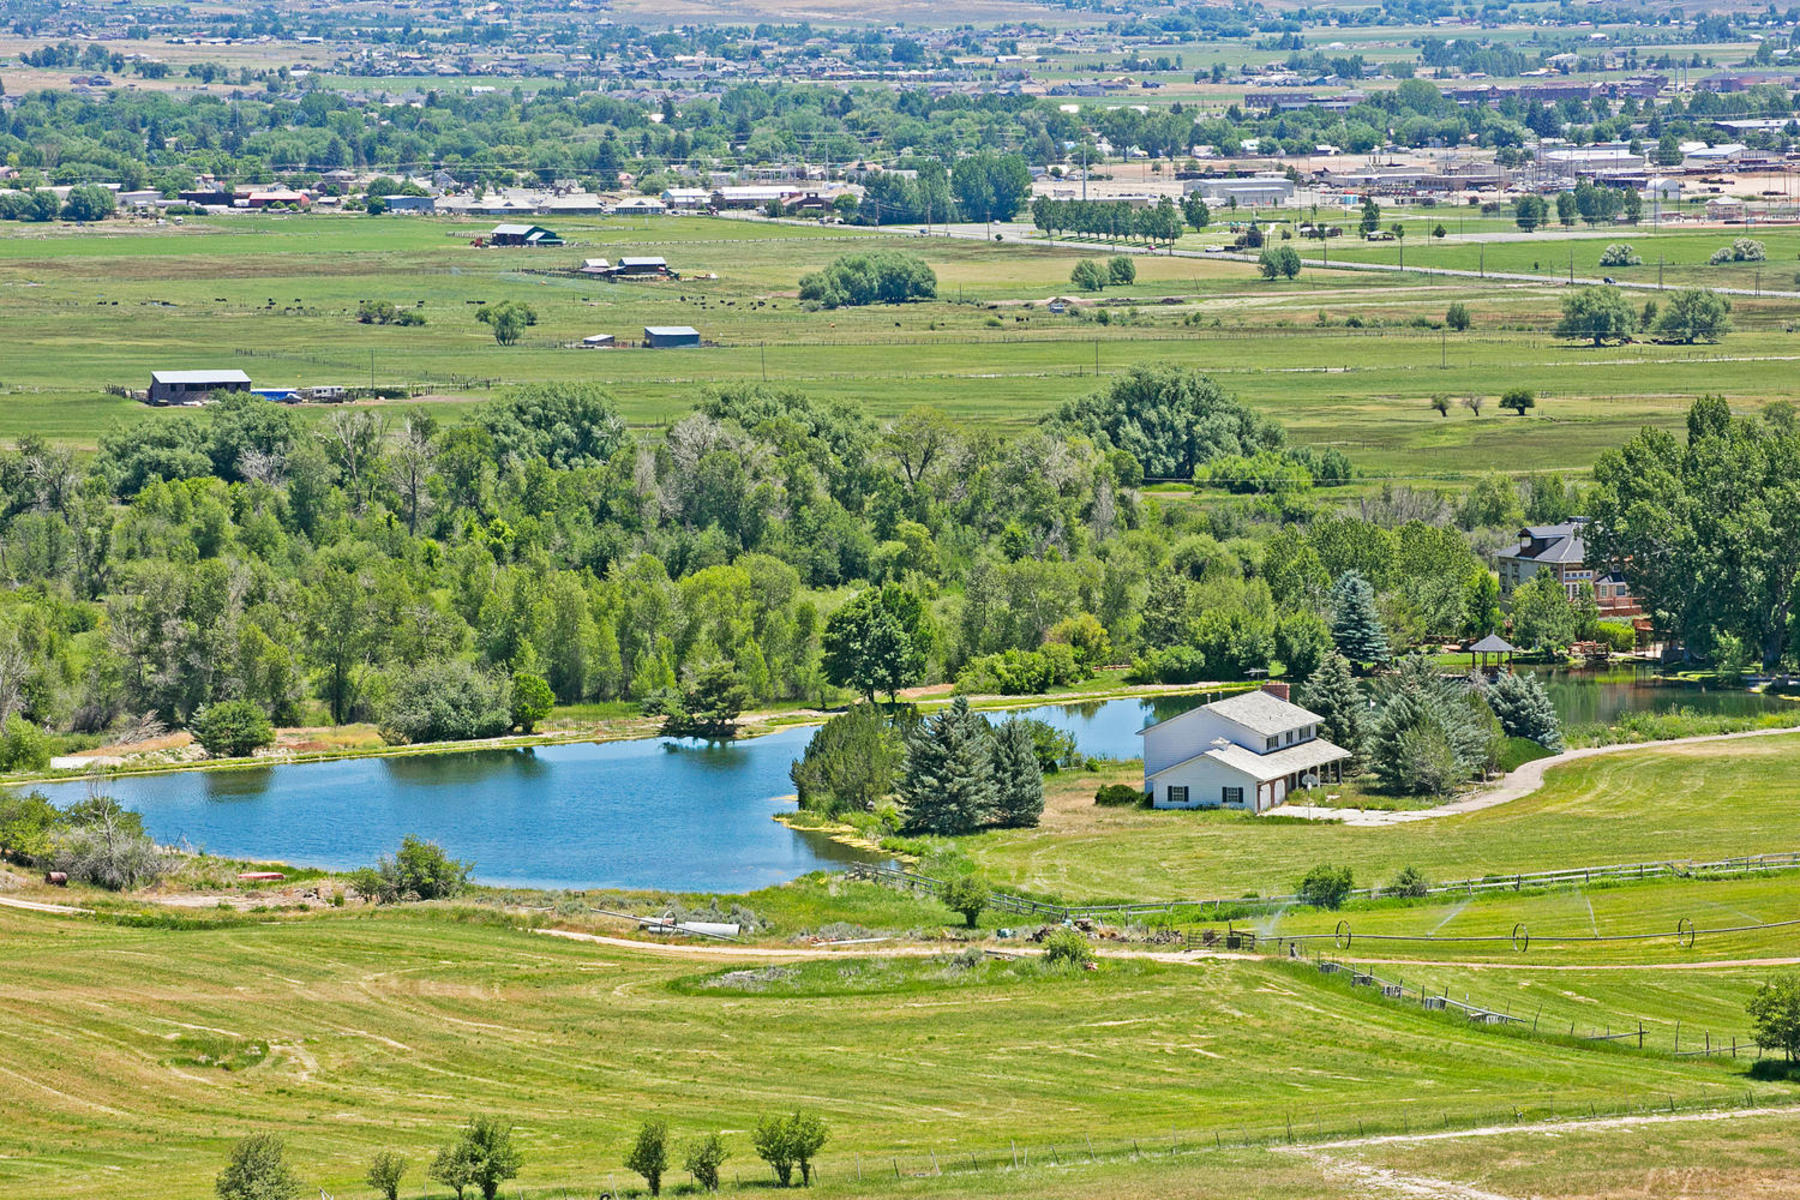 Single Family Home for Sale at 10 Plus Acres Development Parcel In Midway! 815 East Main St Midway, Utah, 84032 United States